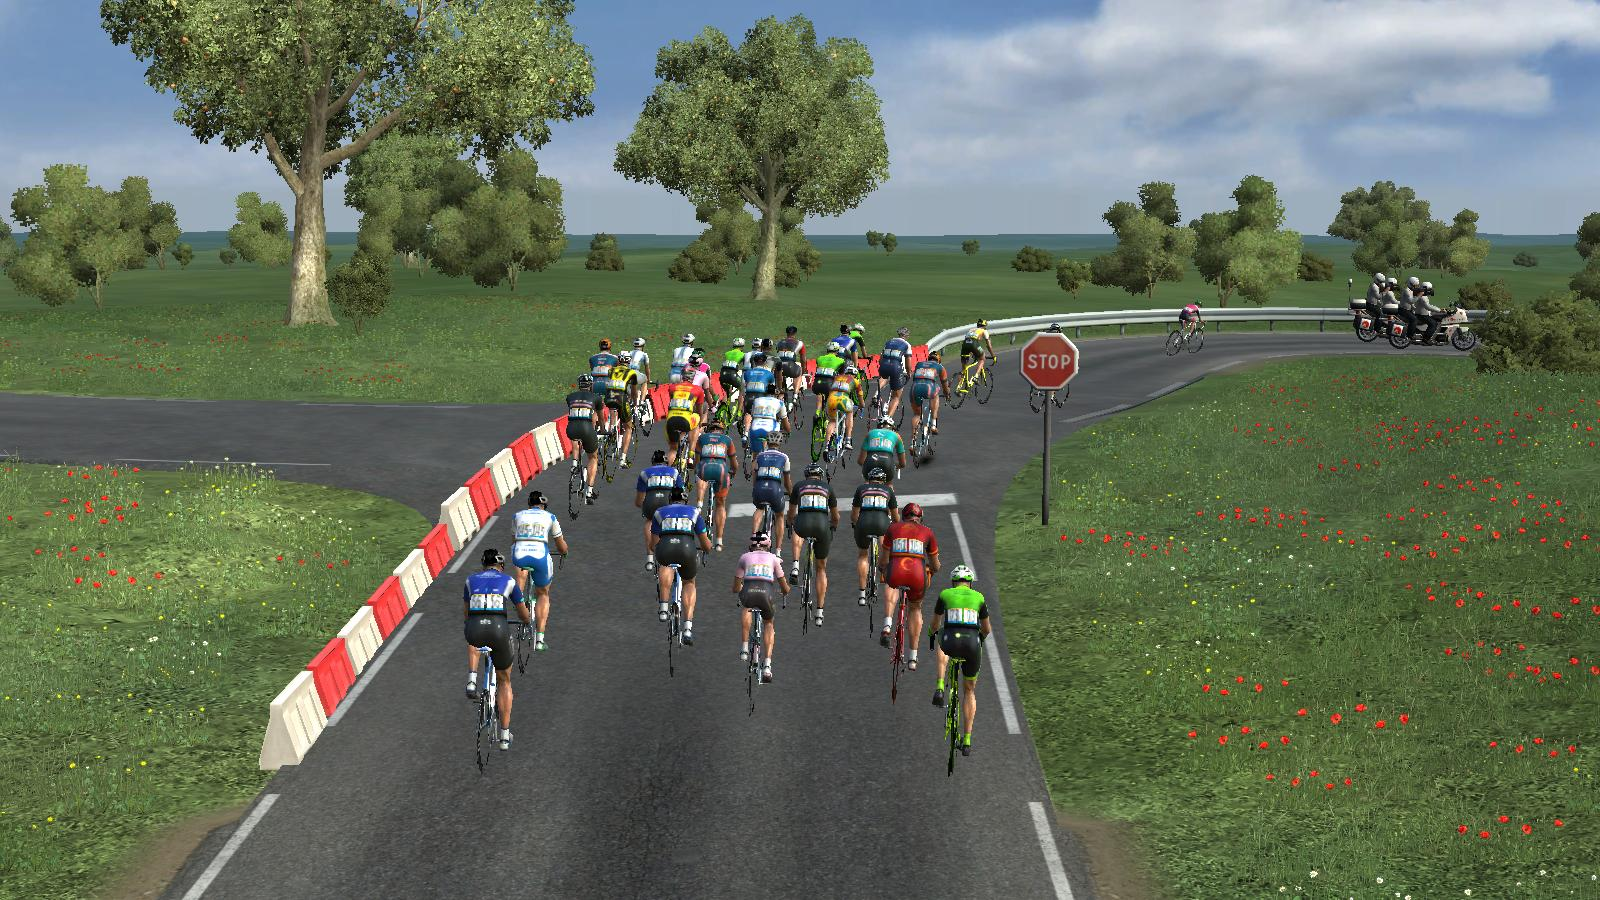 pcmdaily.com/images/mg/2019/Races/PTHC/Rheden/32.jpg